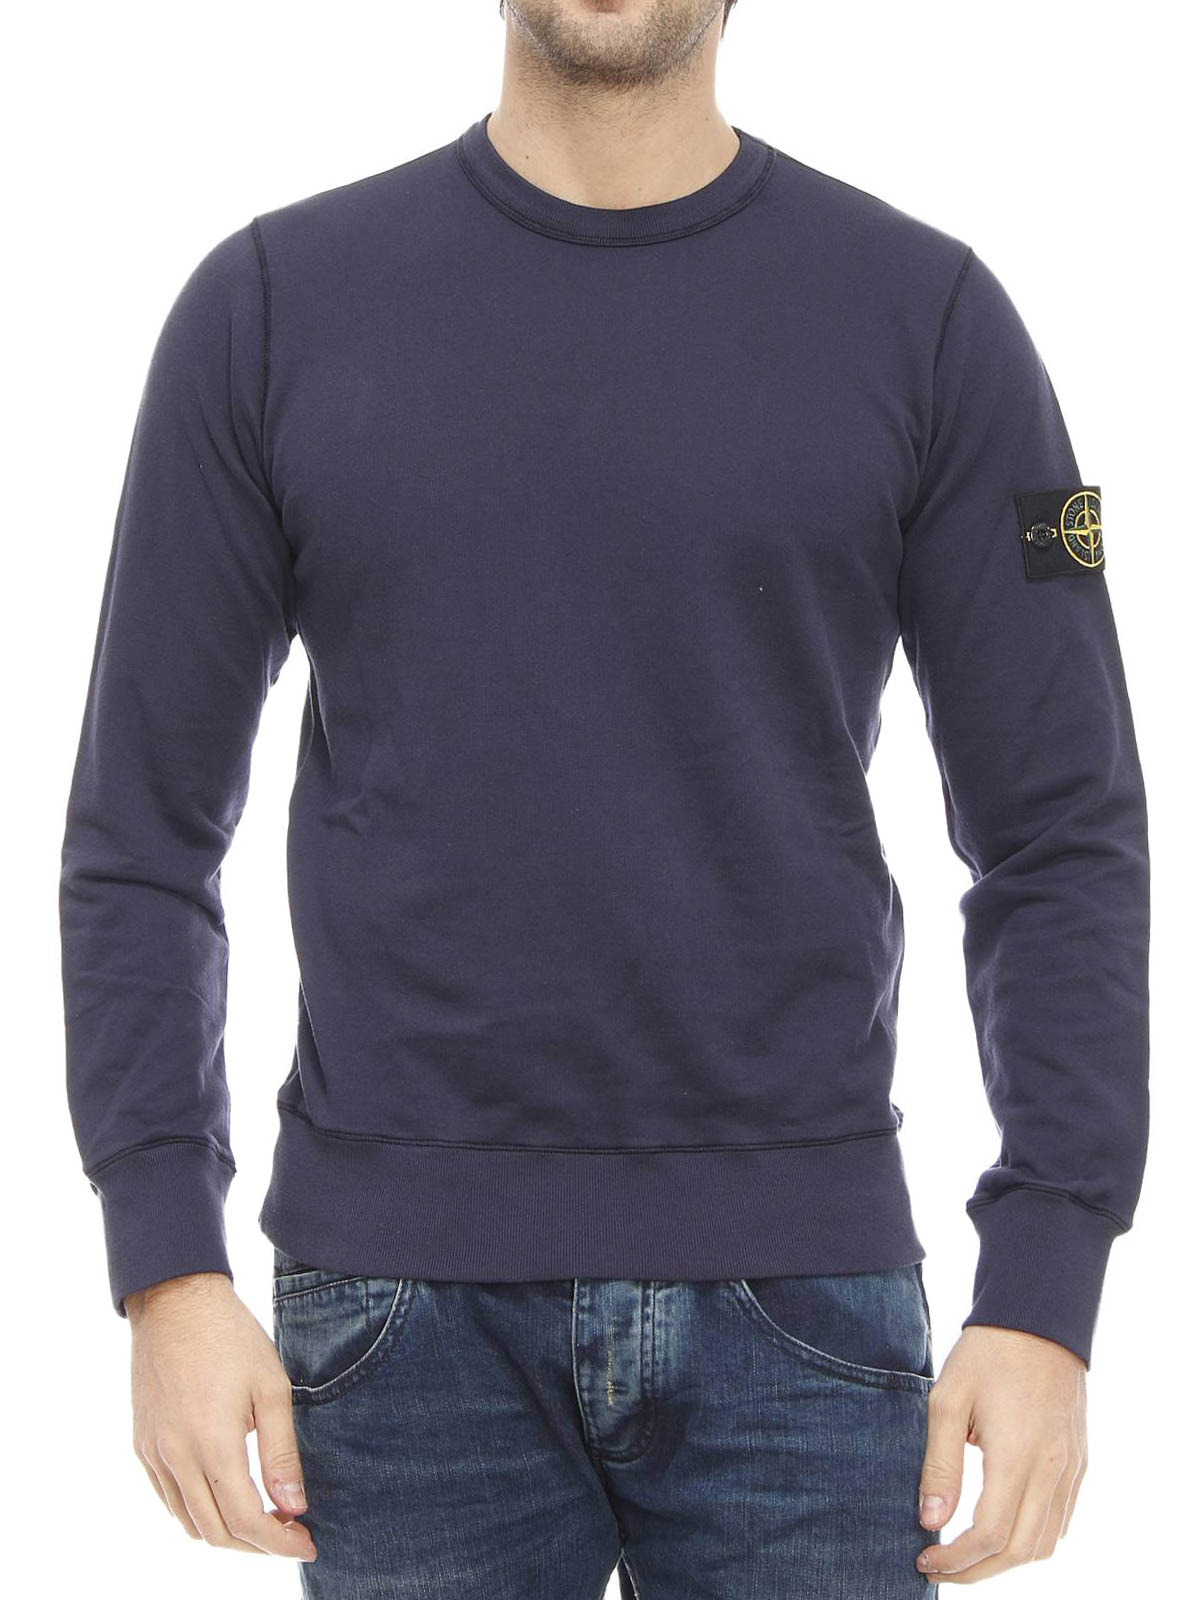 cotton fleece sweatshirt by stone island sweatshirts. Black Bedroom Furniture Sets. Home Design Ideas